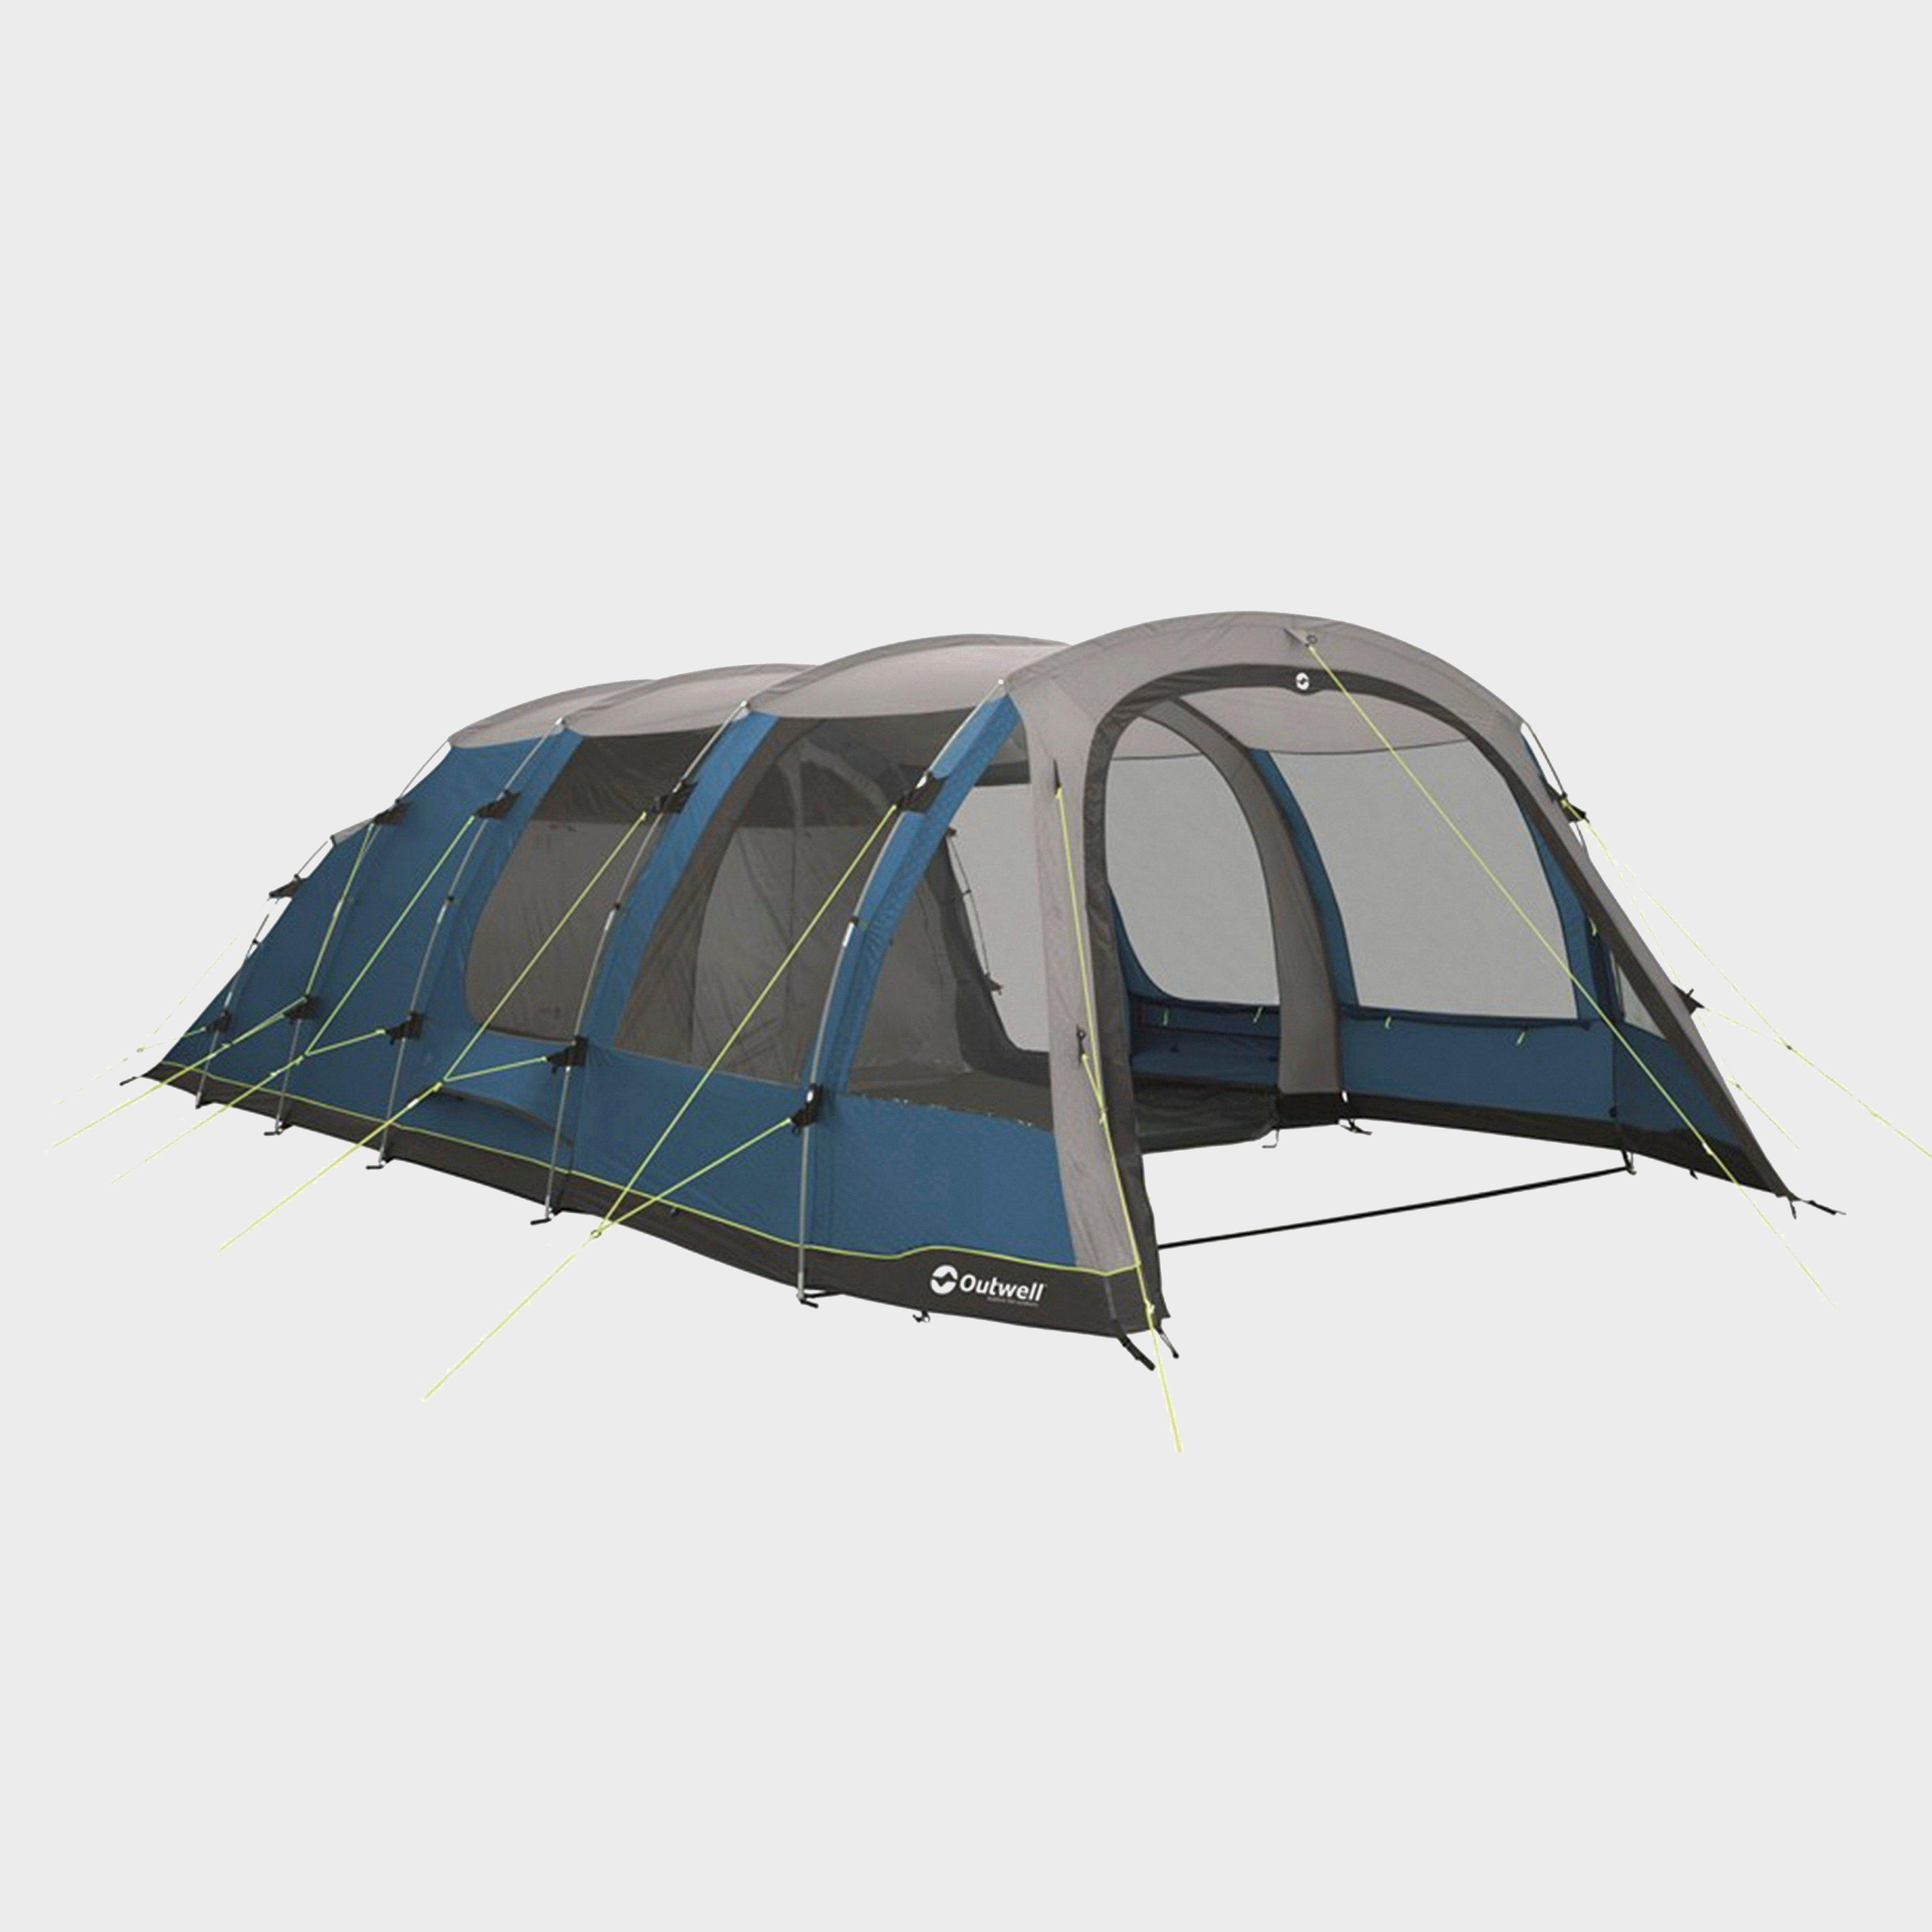 Outwell Ow Harwood 6 - Blue, Blue